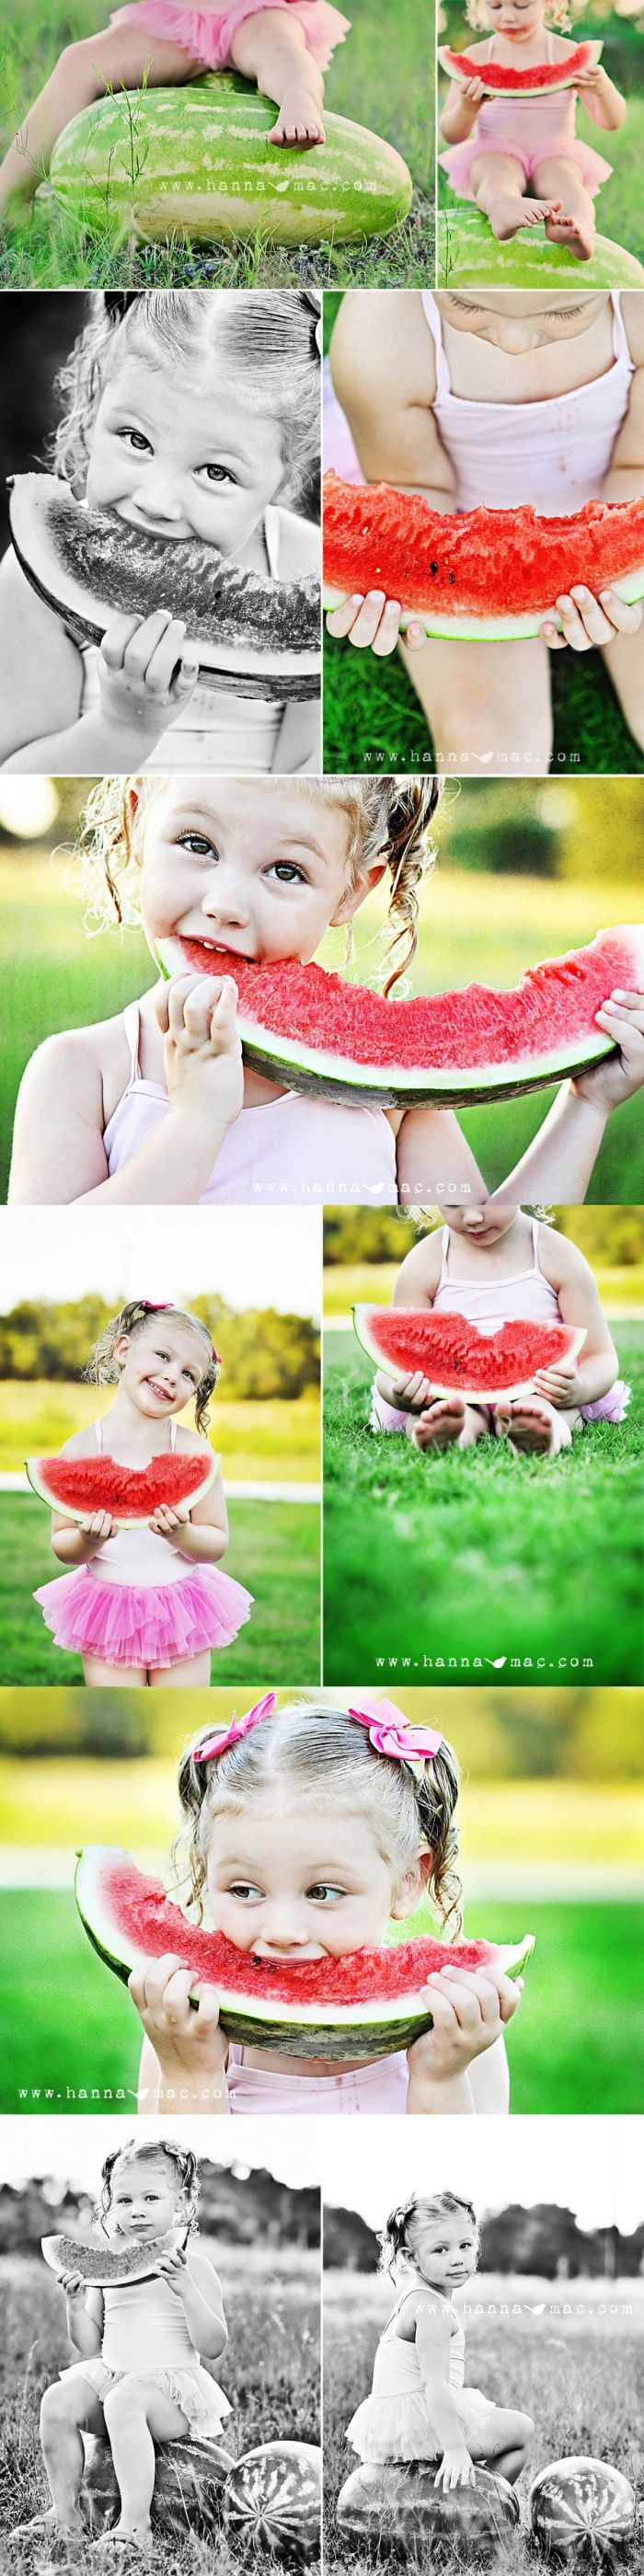 I love the watermelon photo idea. :)  I saw it on someones FB photog page too.  She had one girl in a little white dress and one in a navy blue dress.  I am stoked to dress up the girls for this. :)